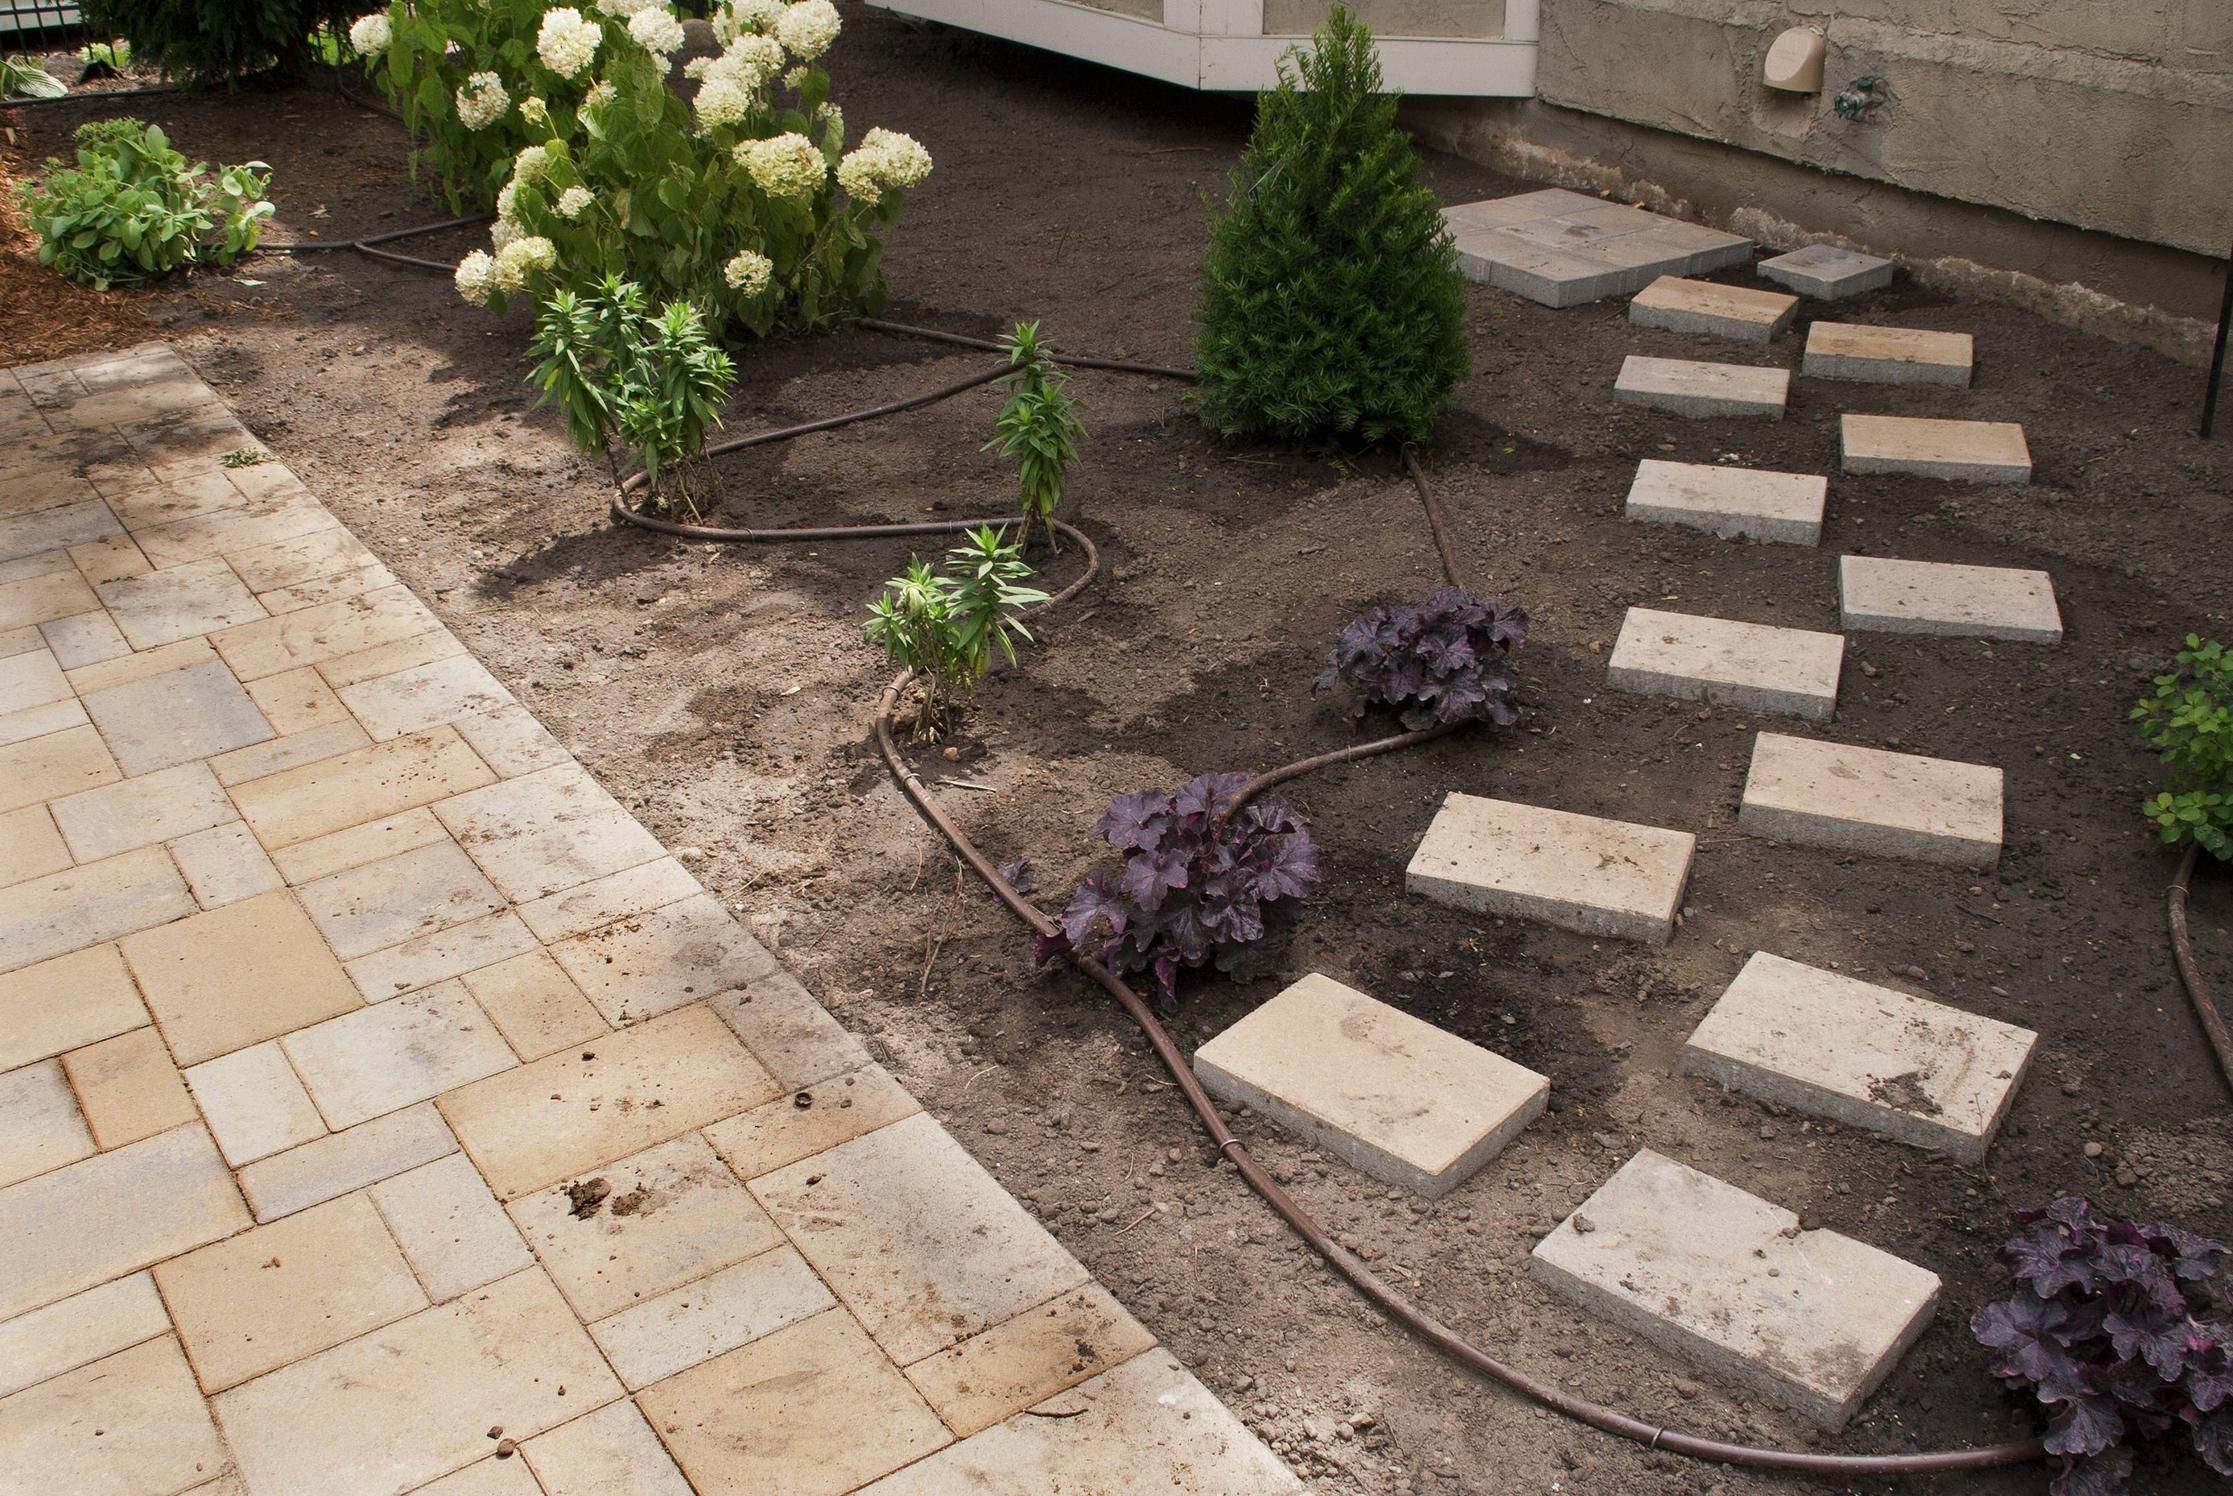 landscaping a yard with poor drainage yard with poor drainage is